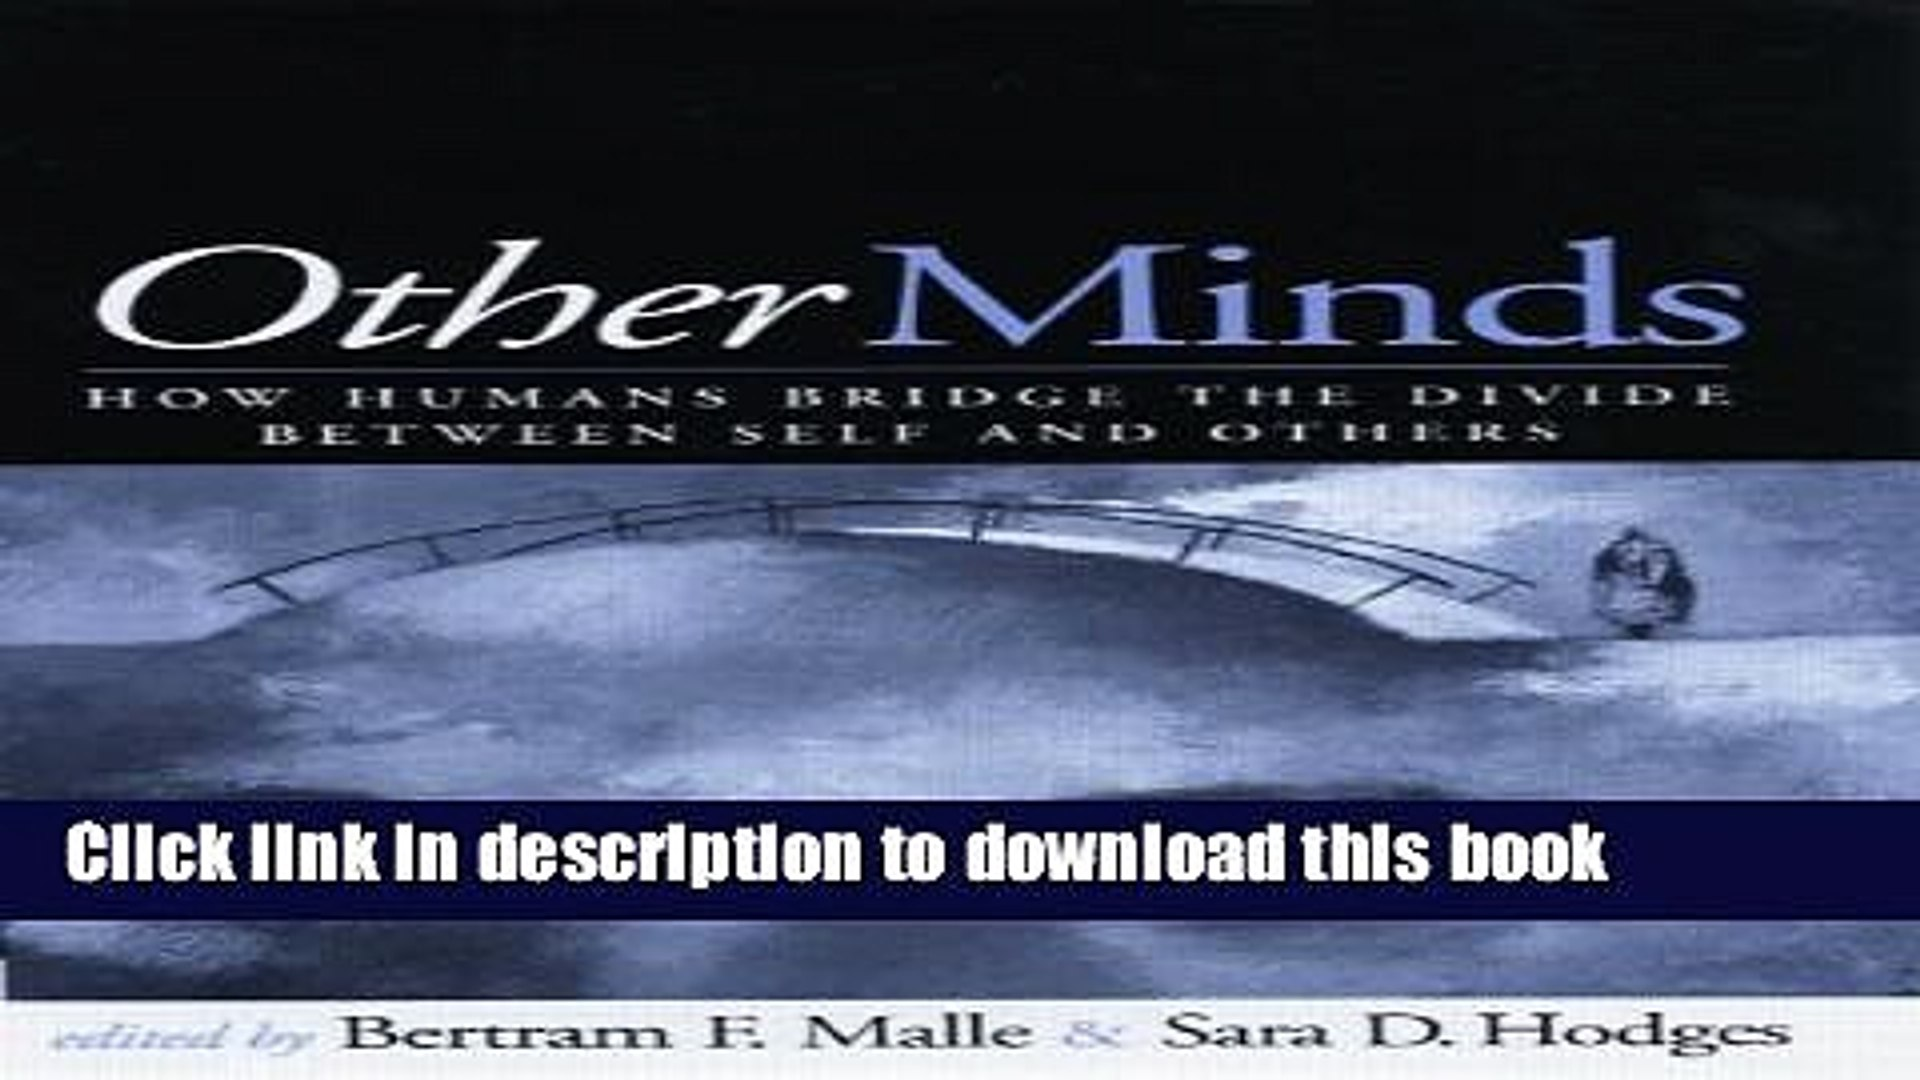 Read Book Other Minds: How Humans Bridge the Divide between Self and Others E-Book Free